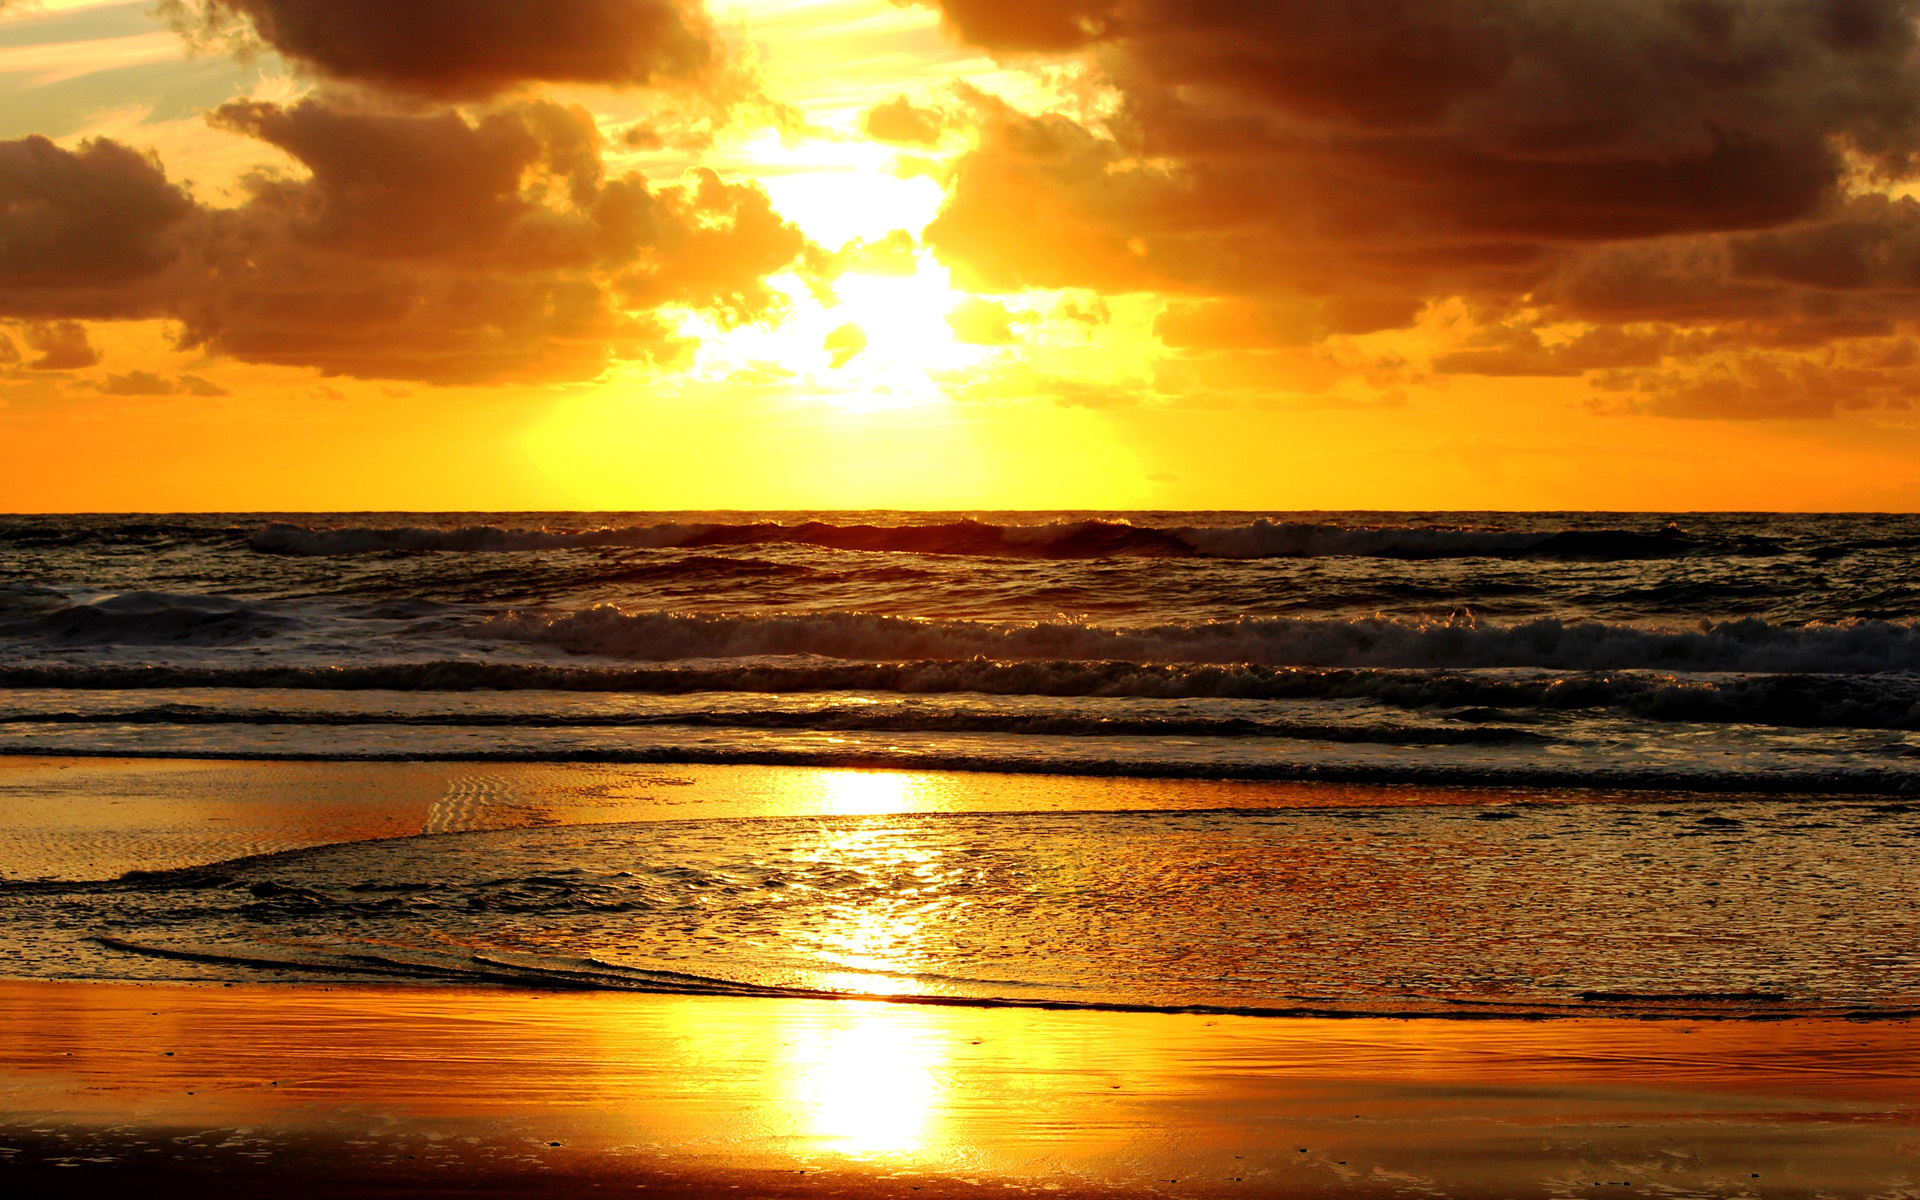 Golden Sunset | 321 Relaxing Music, Images and Videos